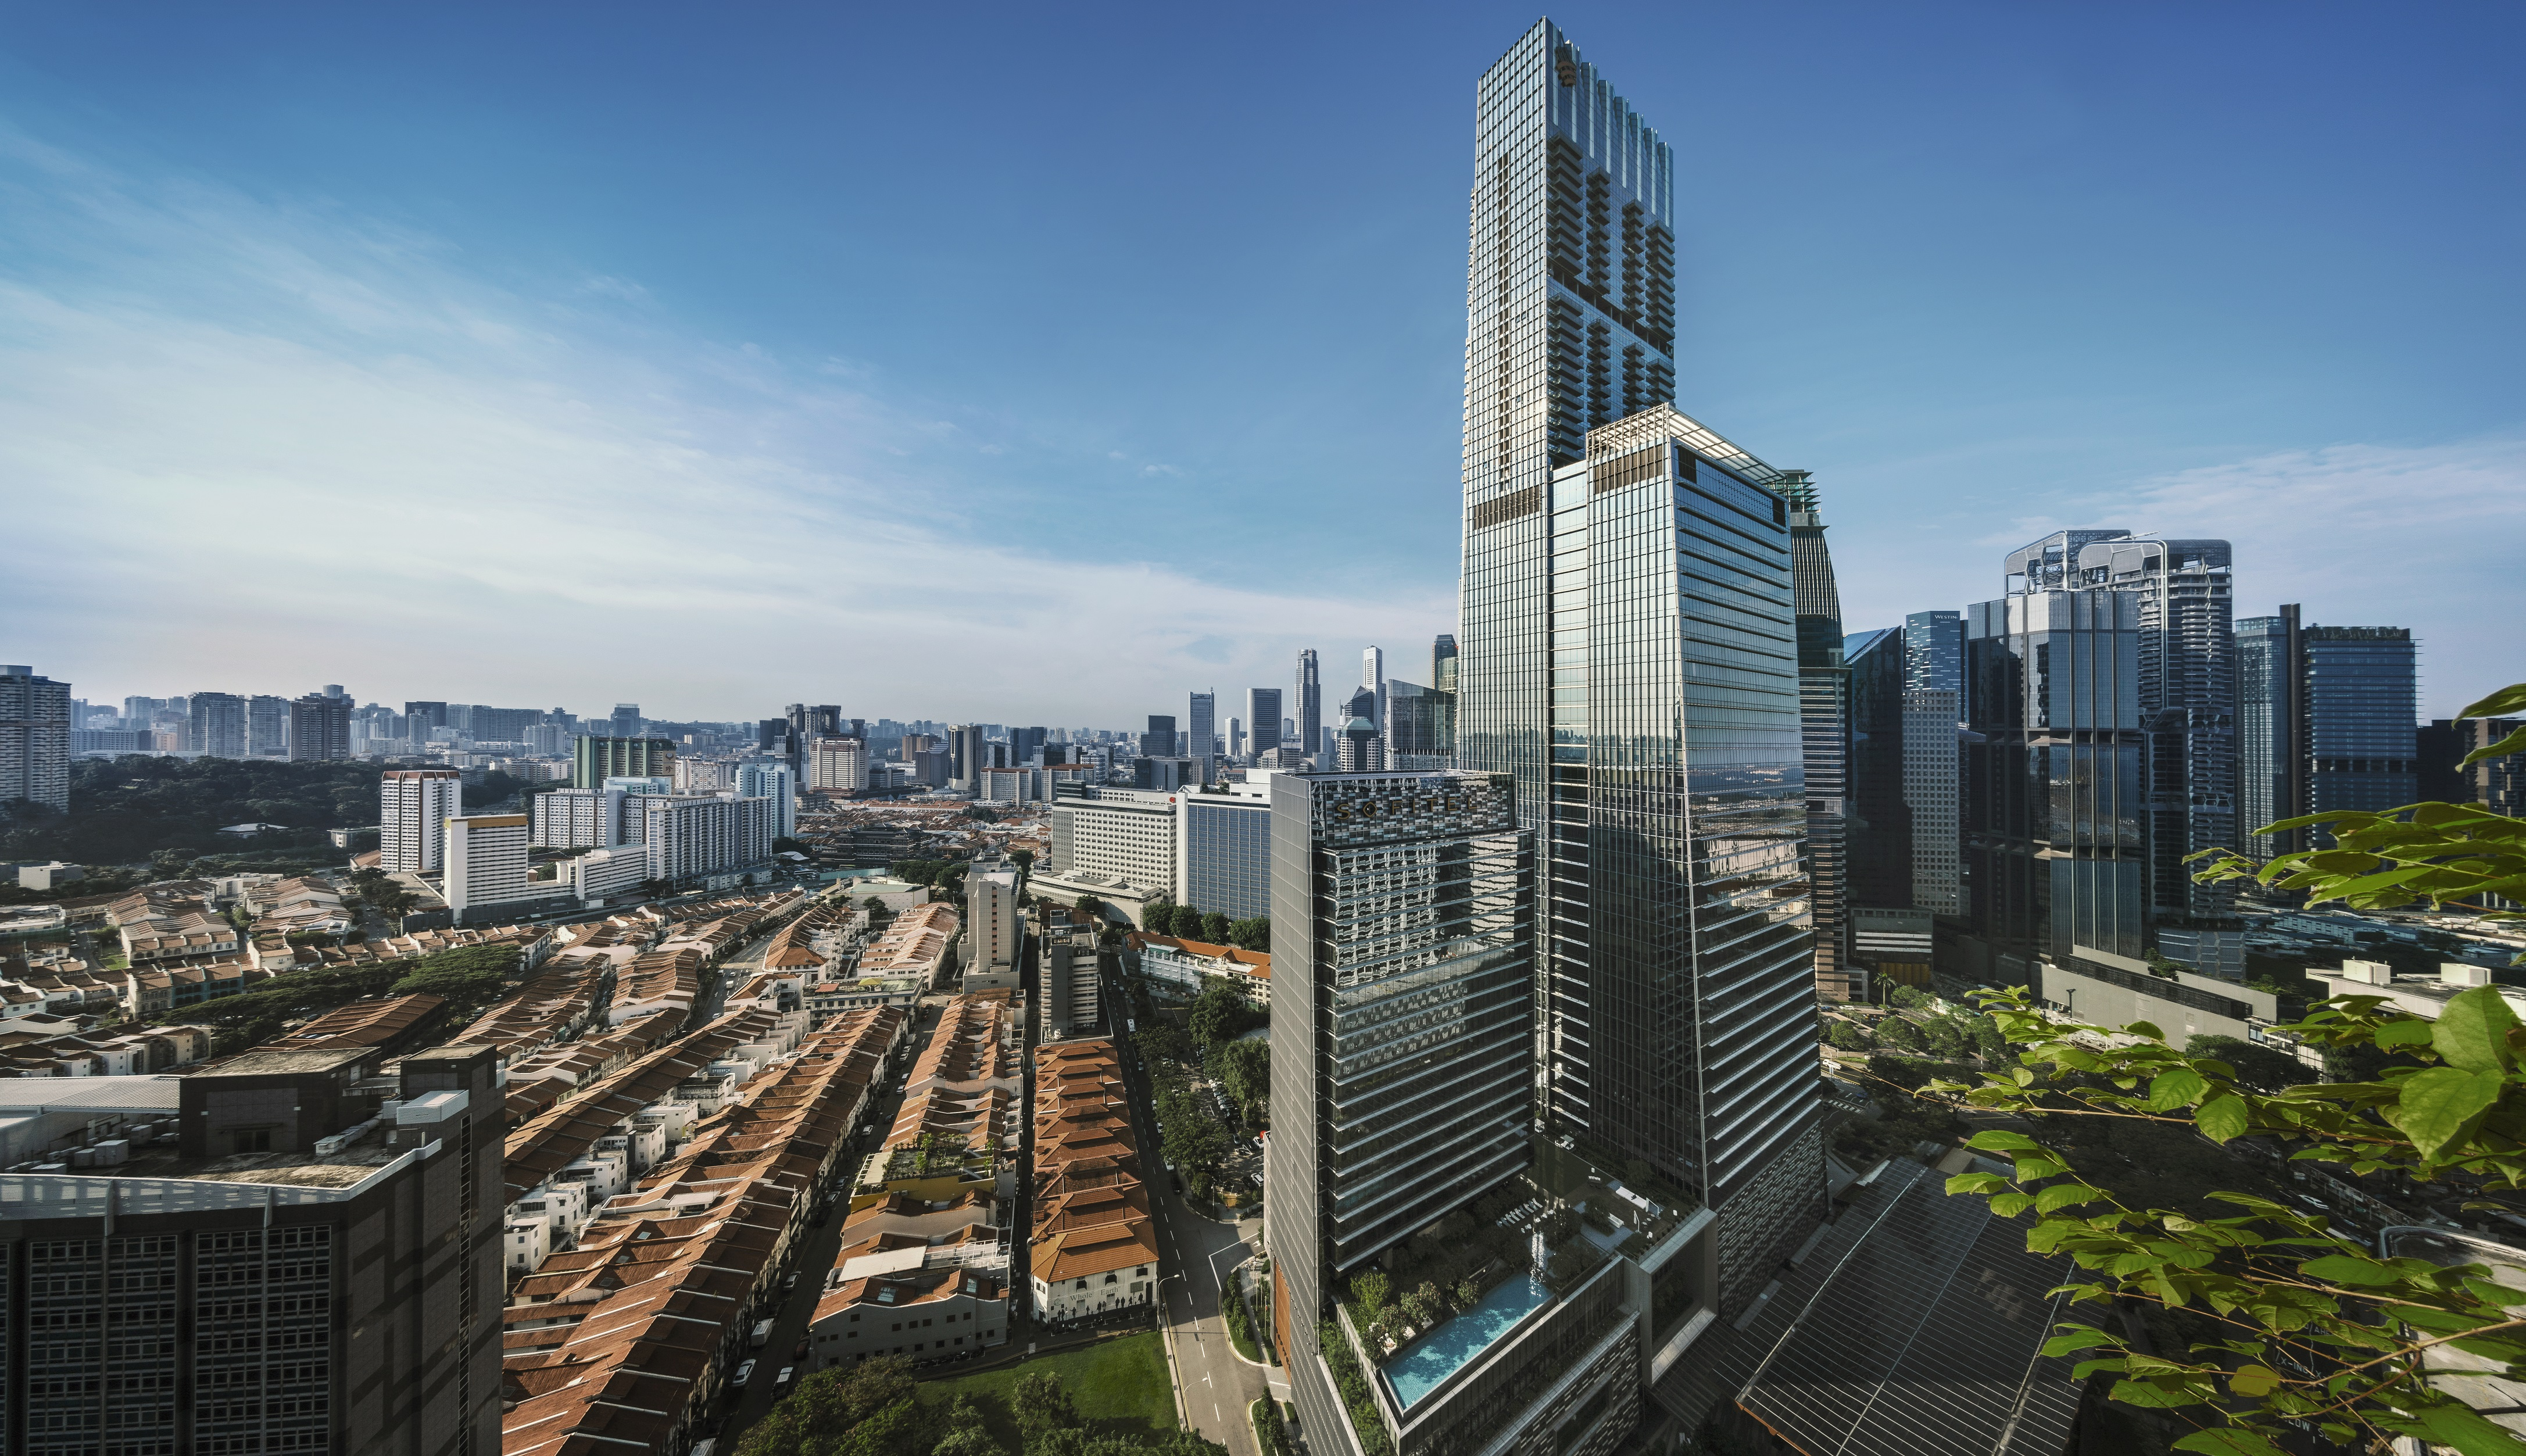 Guoco Tower was awarded the 2019 ULI Global Awards for Excellence (Credit: Darren Soh)